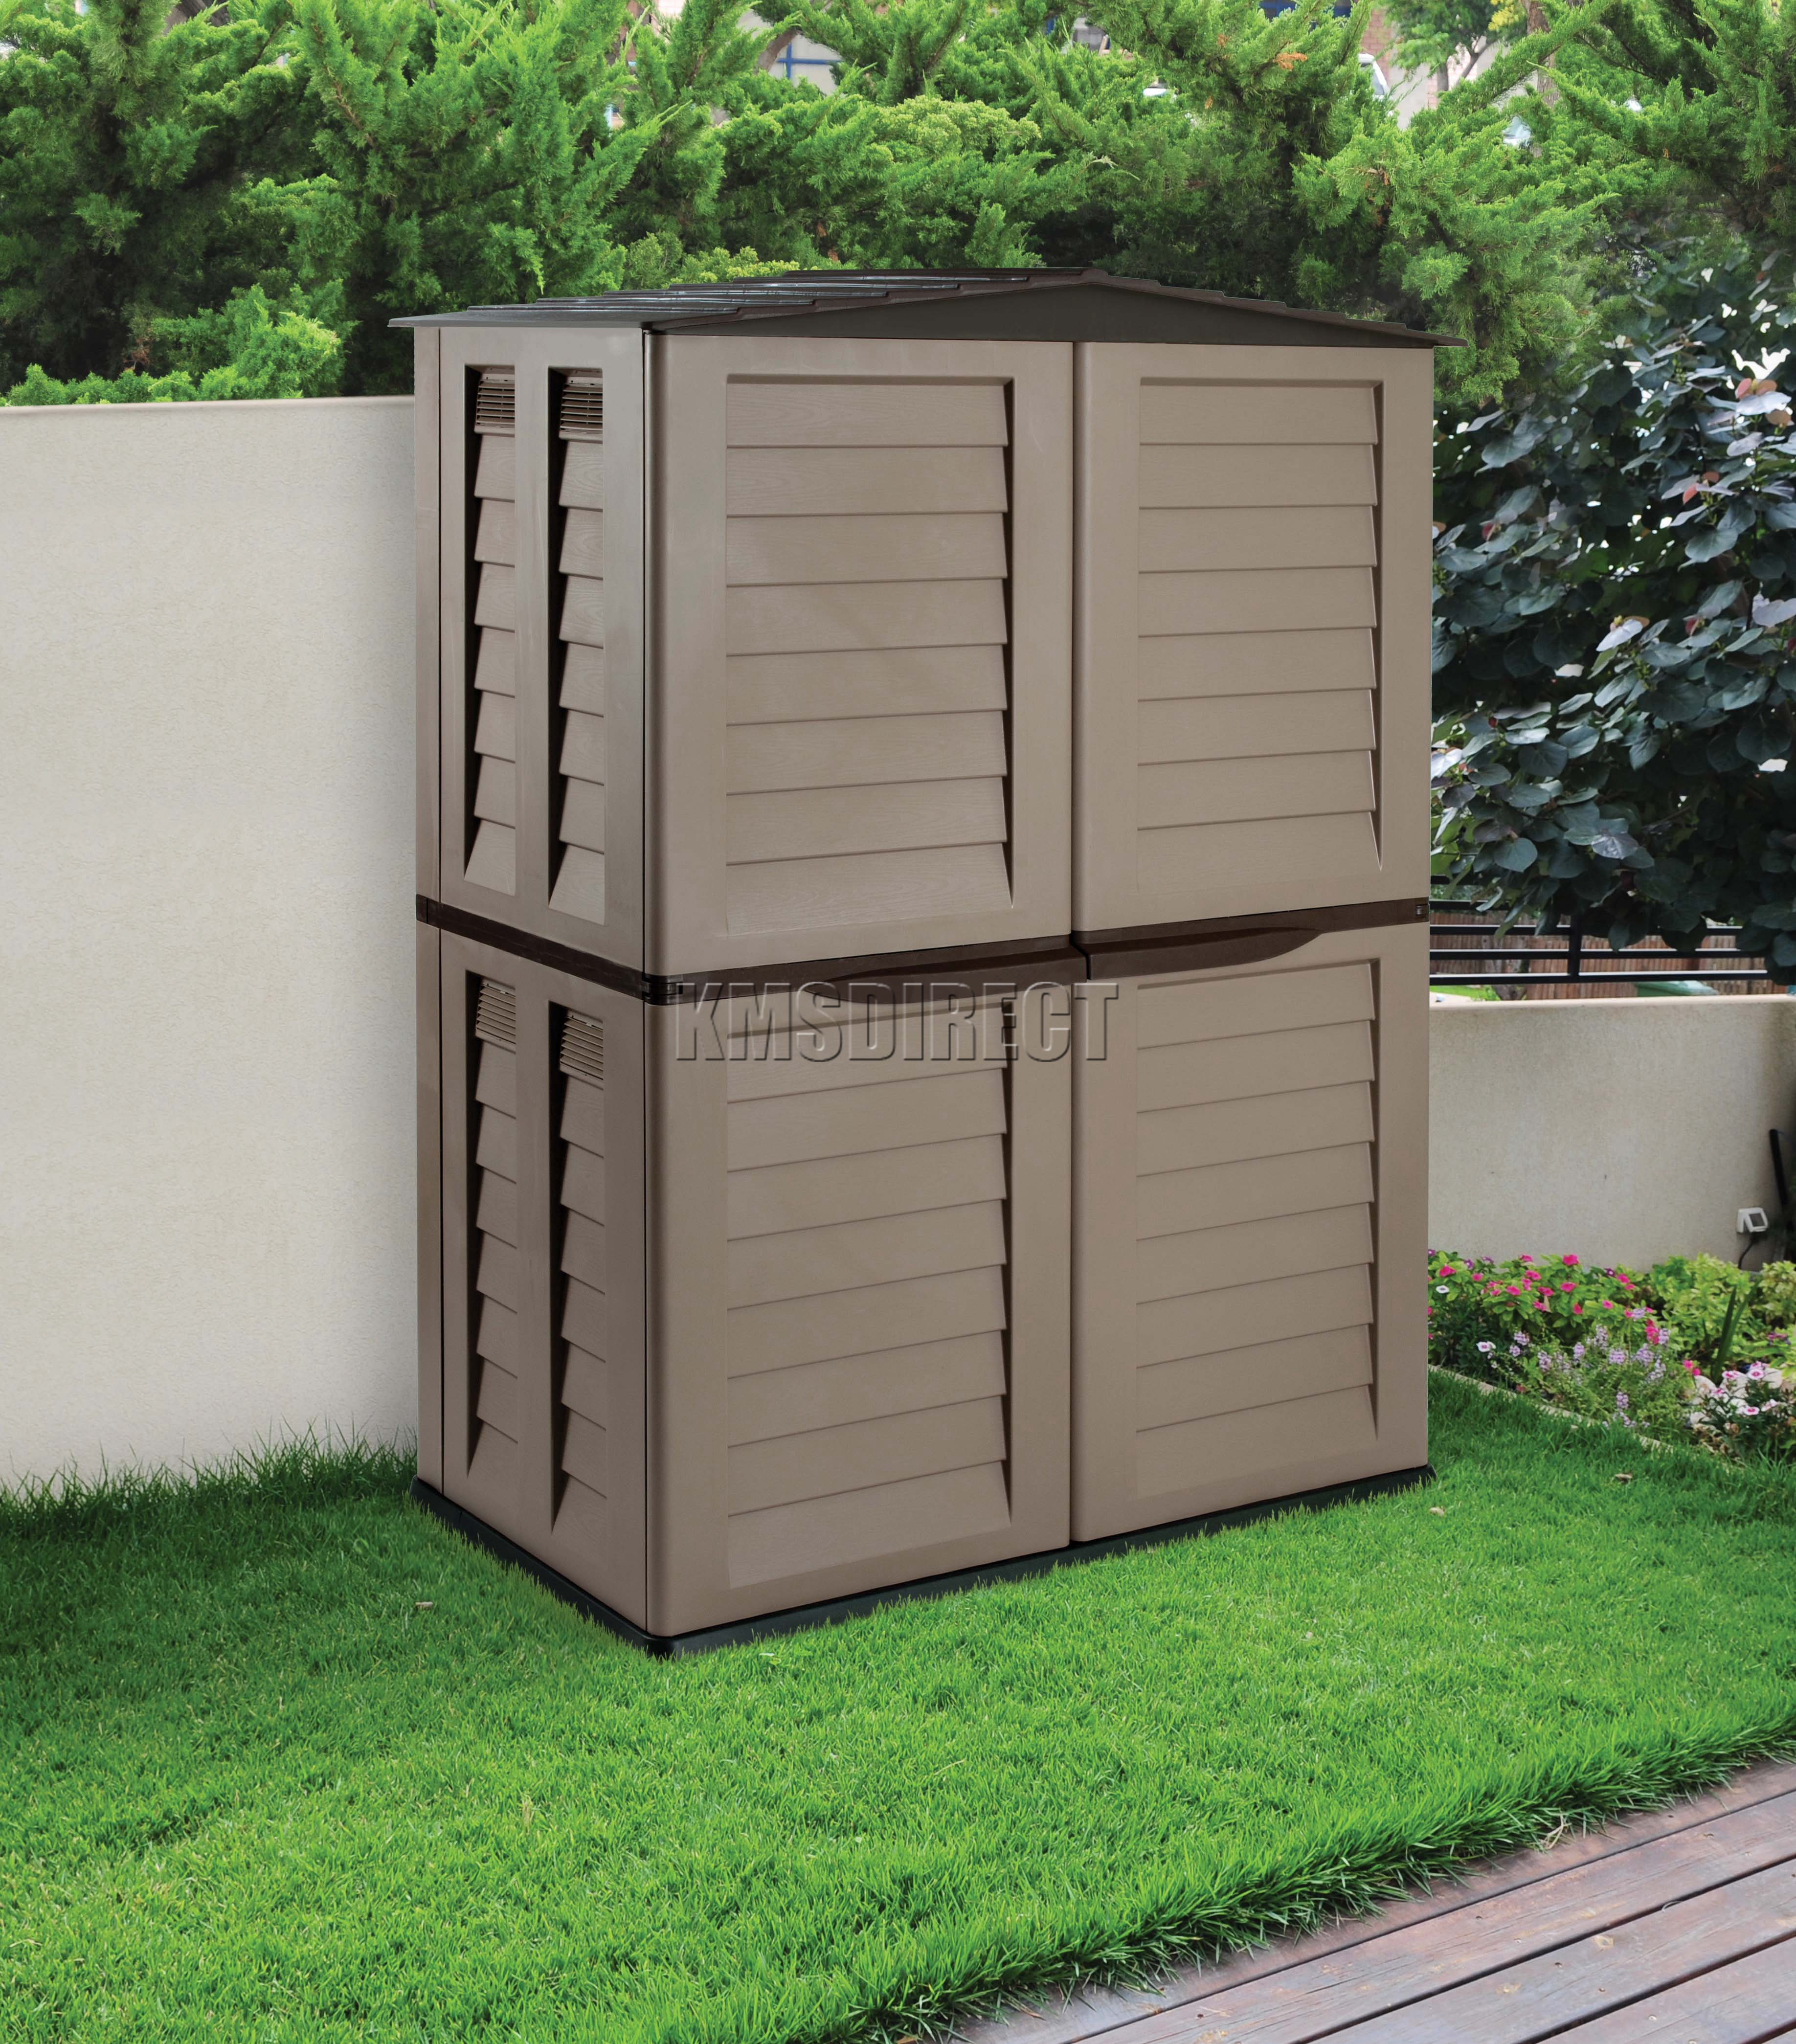 Starplast outdoor plastic garden tall shed box storage unit 37 811 chocolate new ebay for Name something you keep in a garden shed